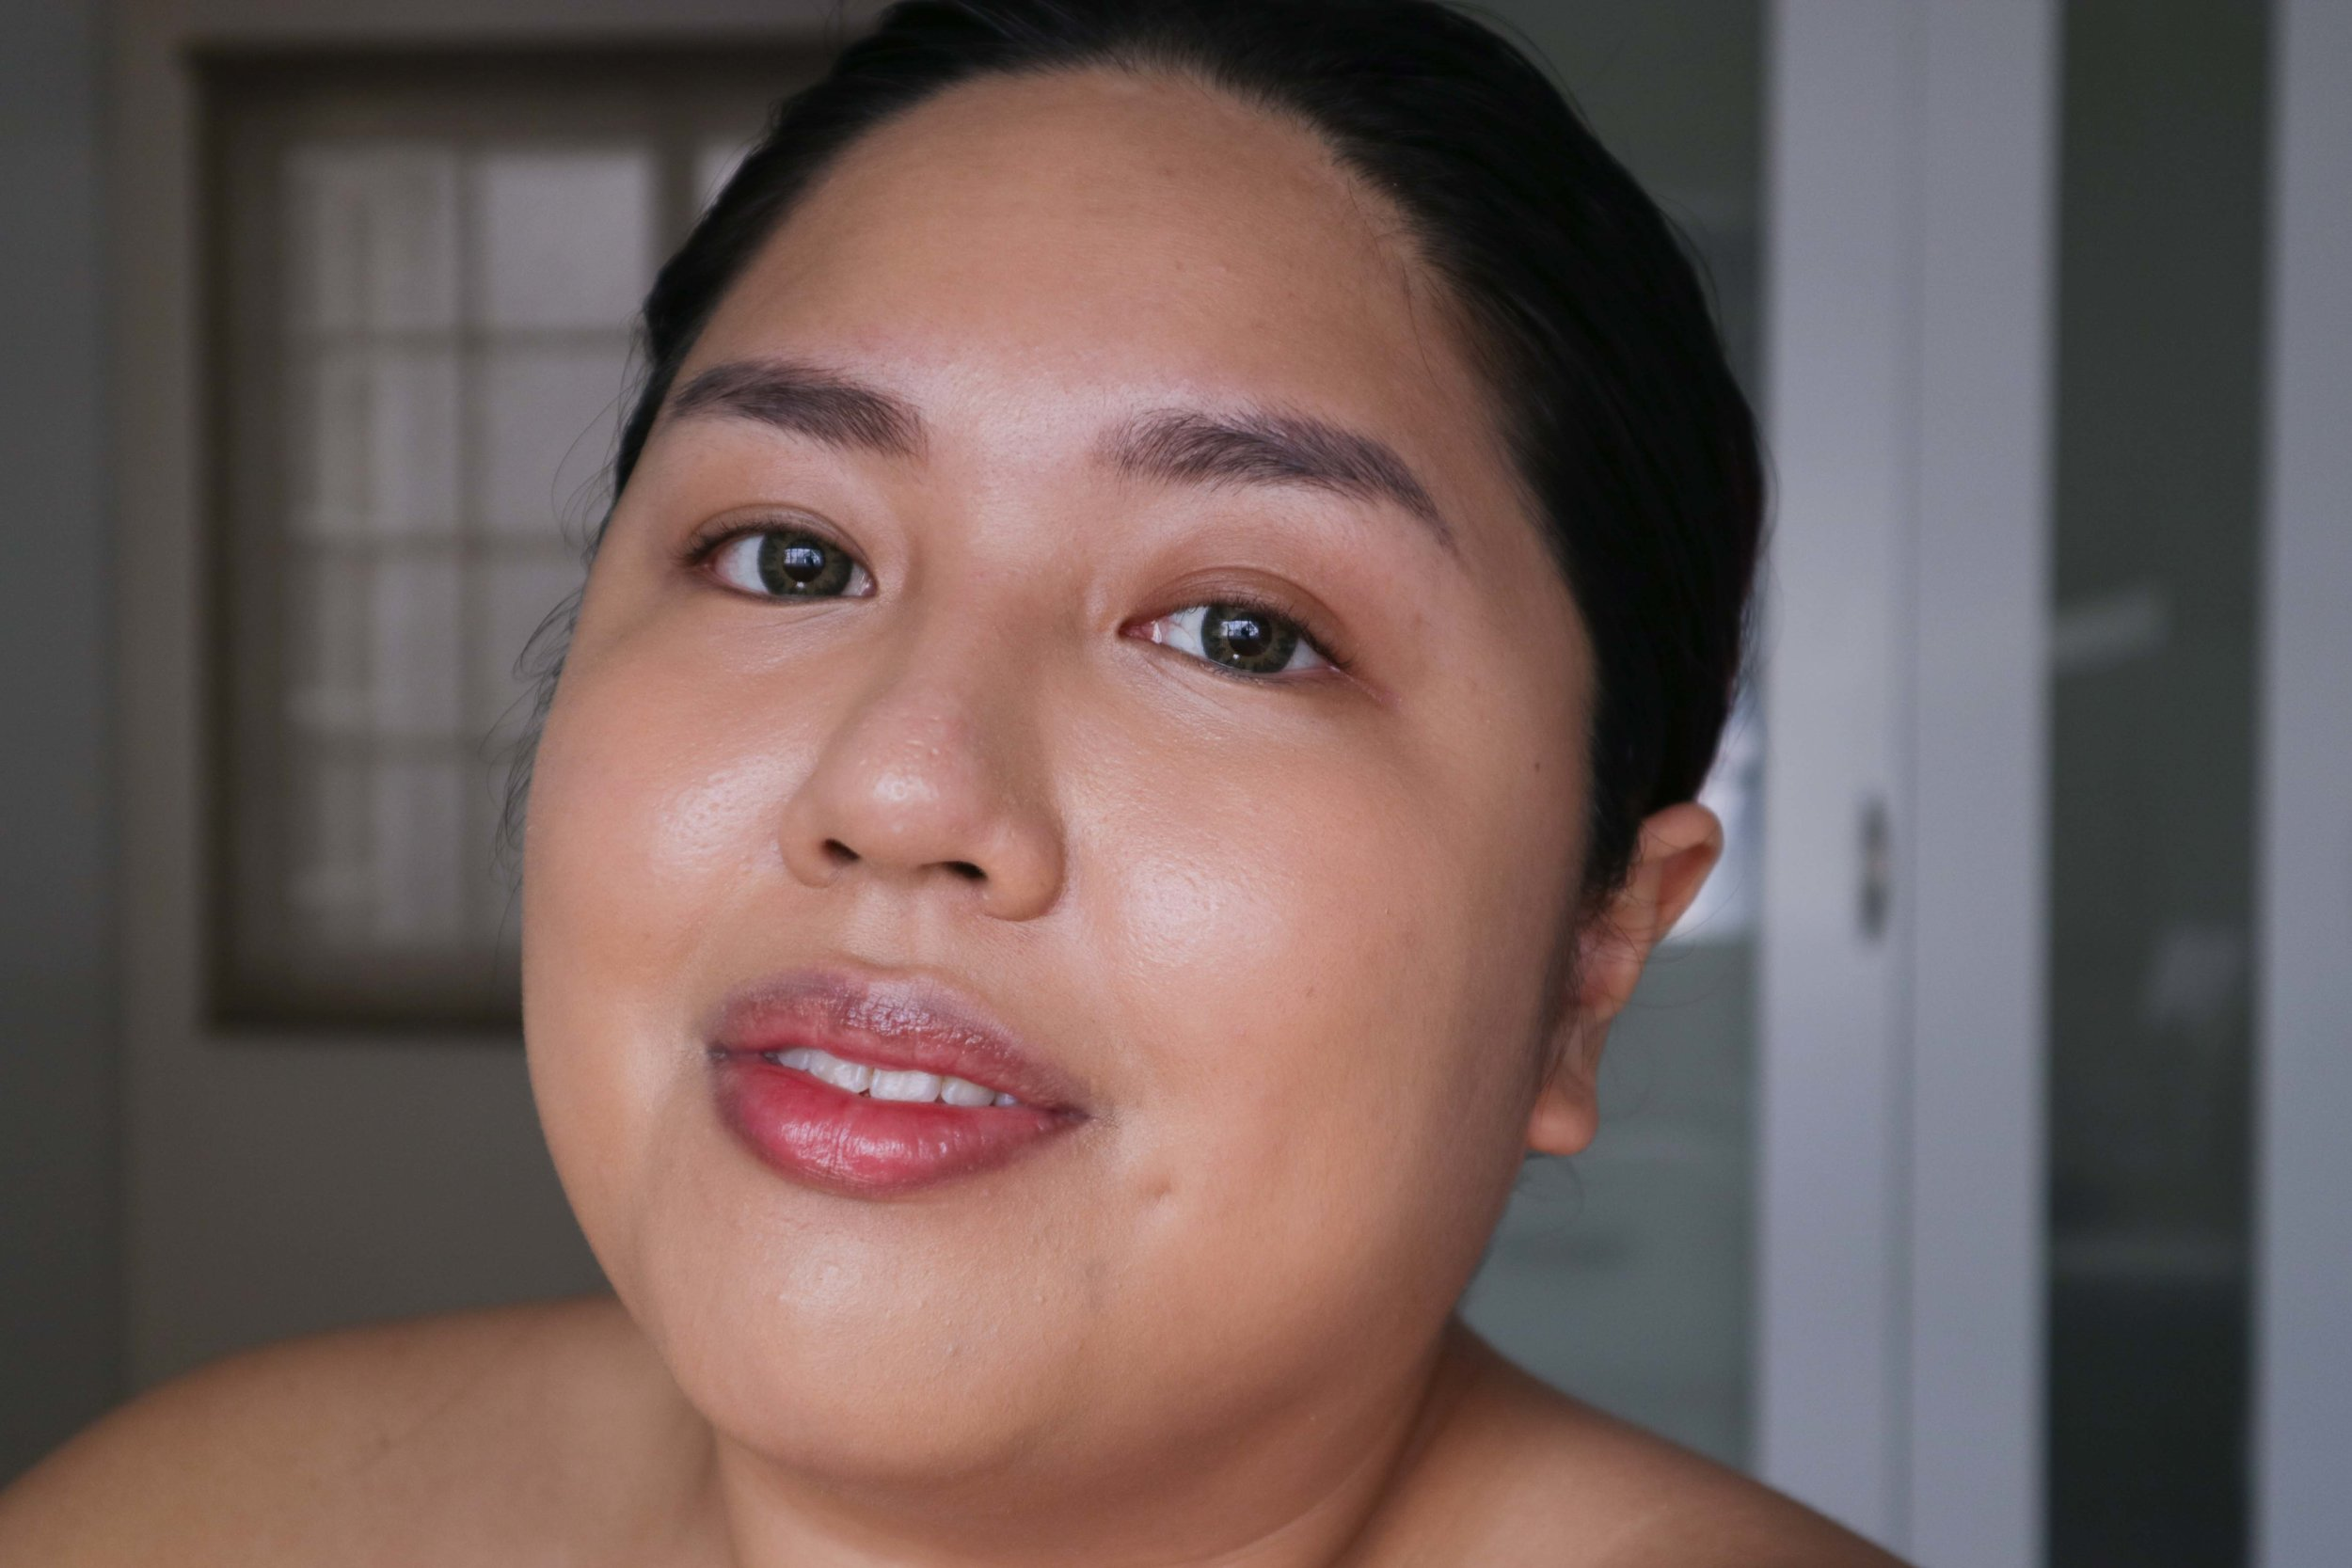 One layer of the Guerlain L'Essentiel Foundation without powder